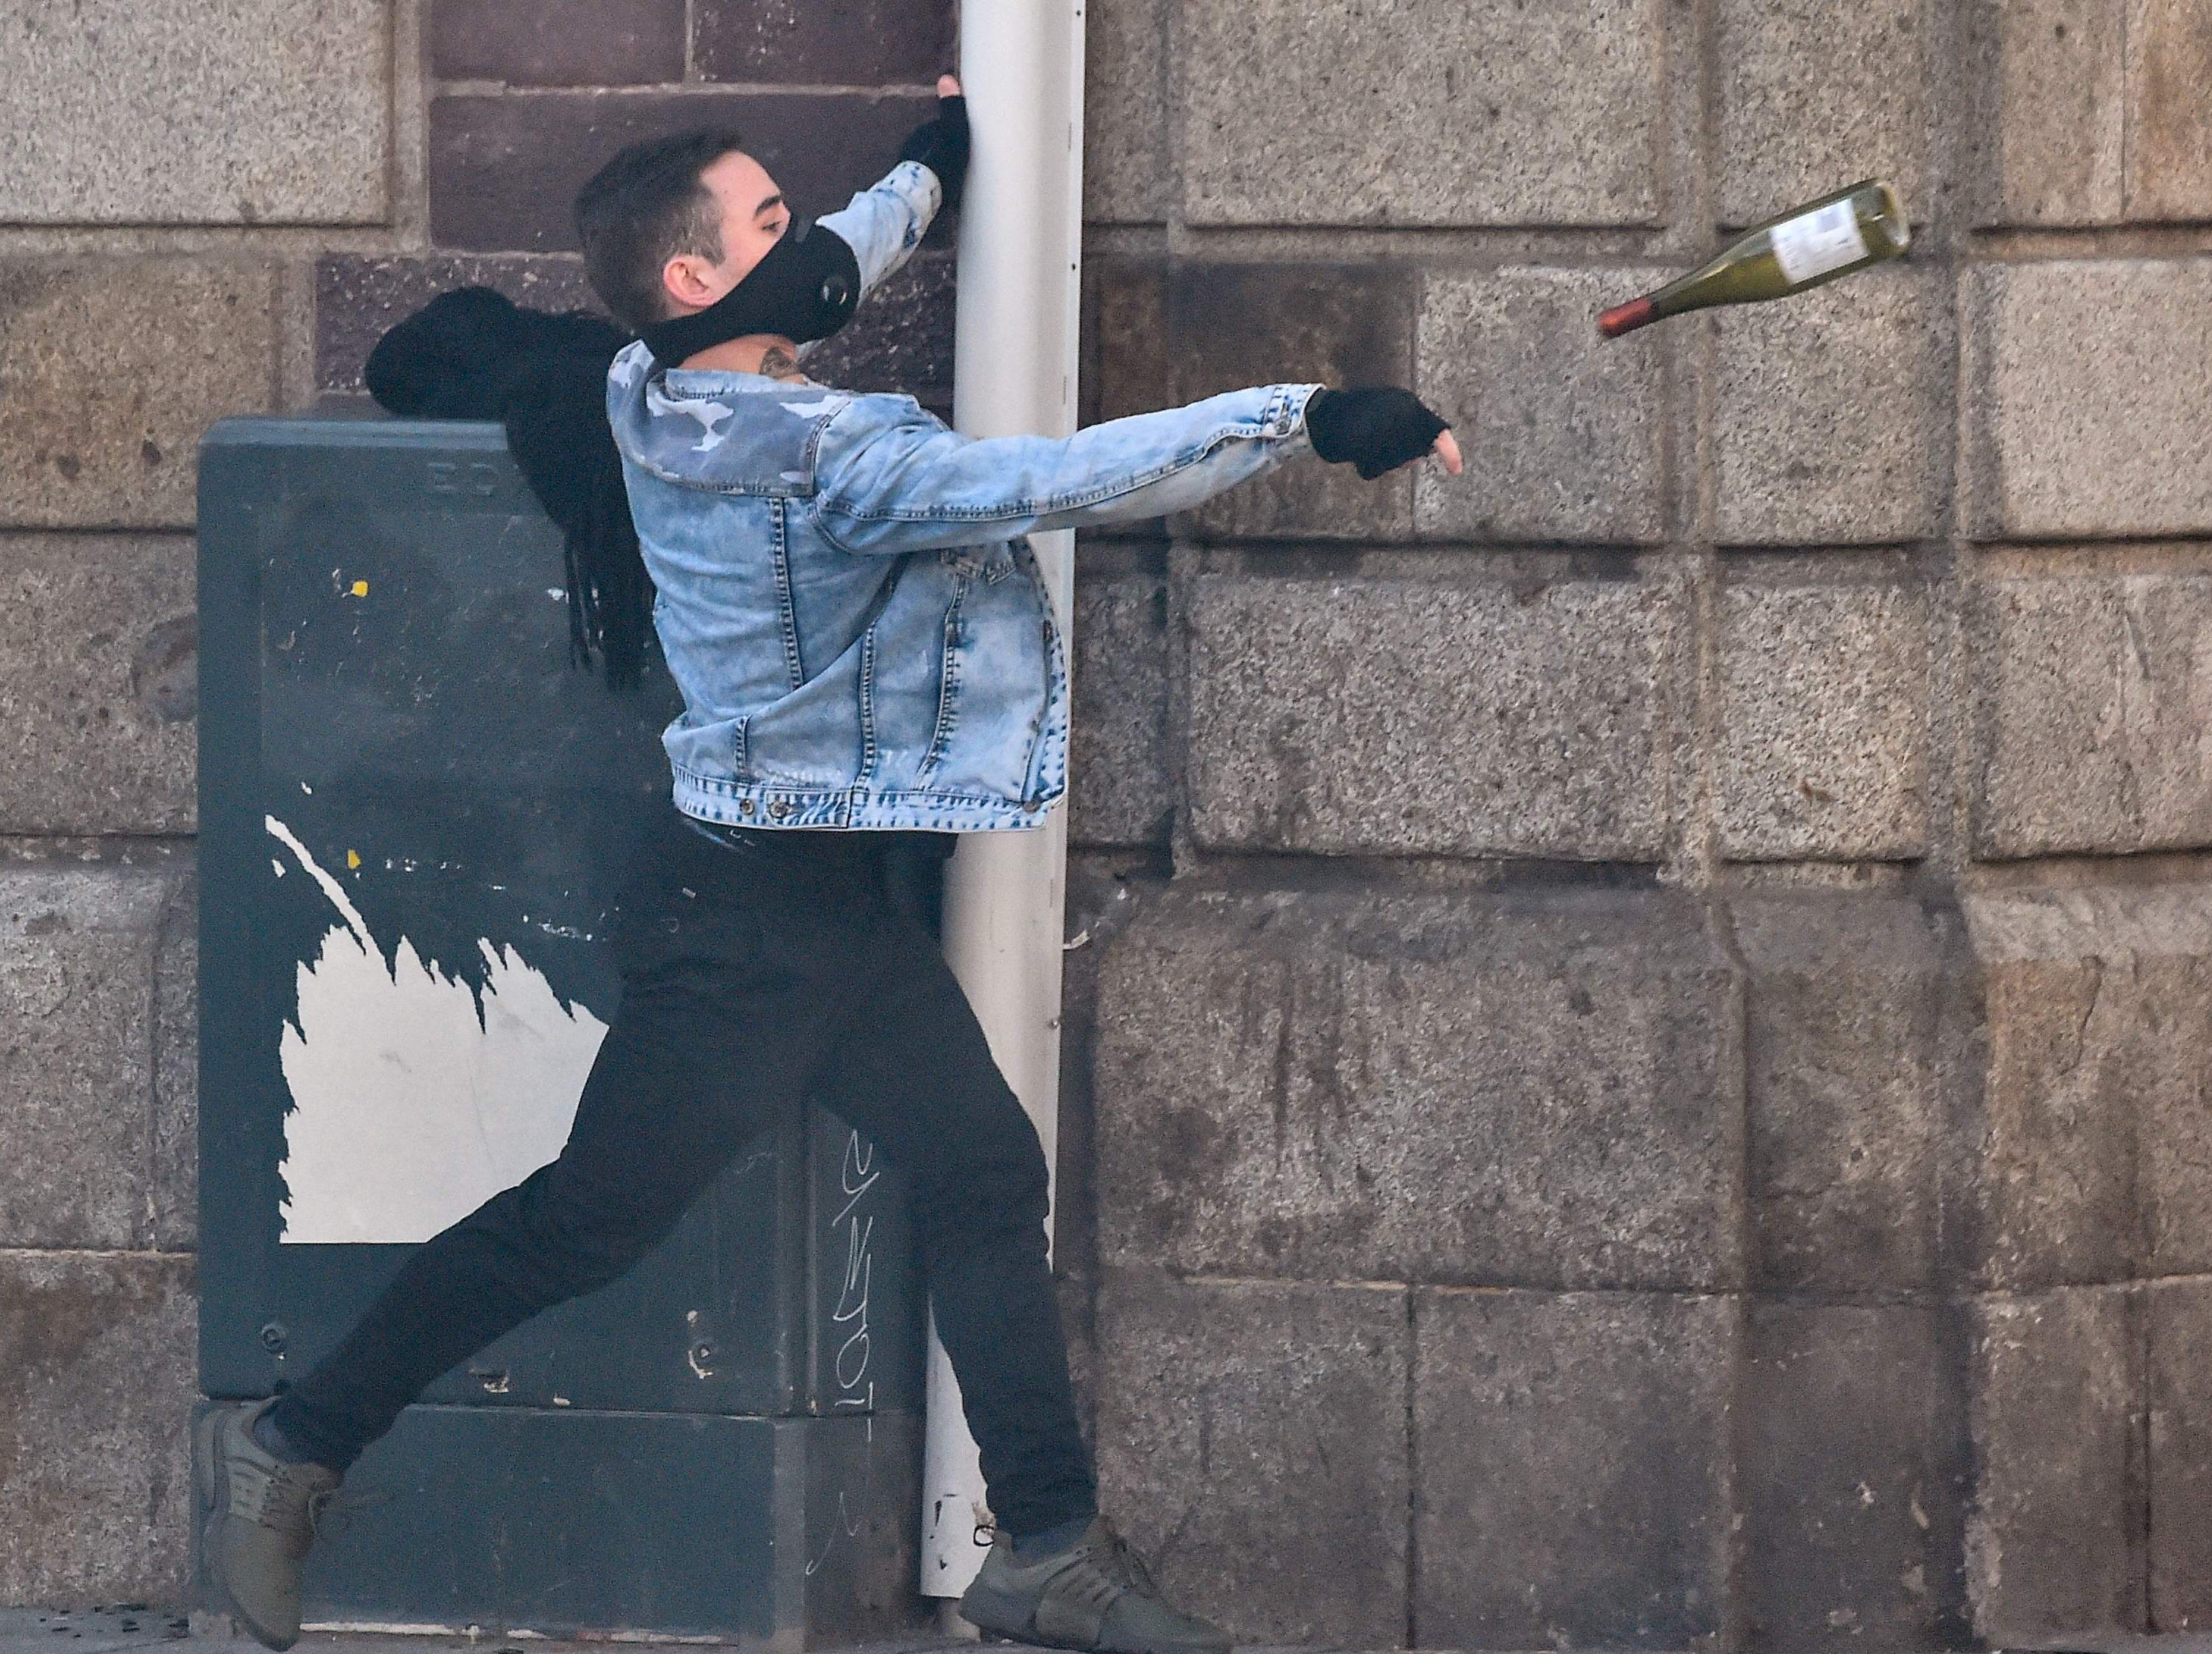 A man lobs a glass bottle as members of the yellow vest (gilet jaune) take part in the 15th consecutive Saturday of demonstrations in Rennes, western France on Feb. 23, 2019.